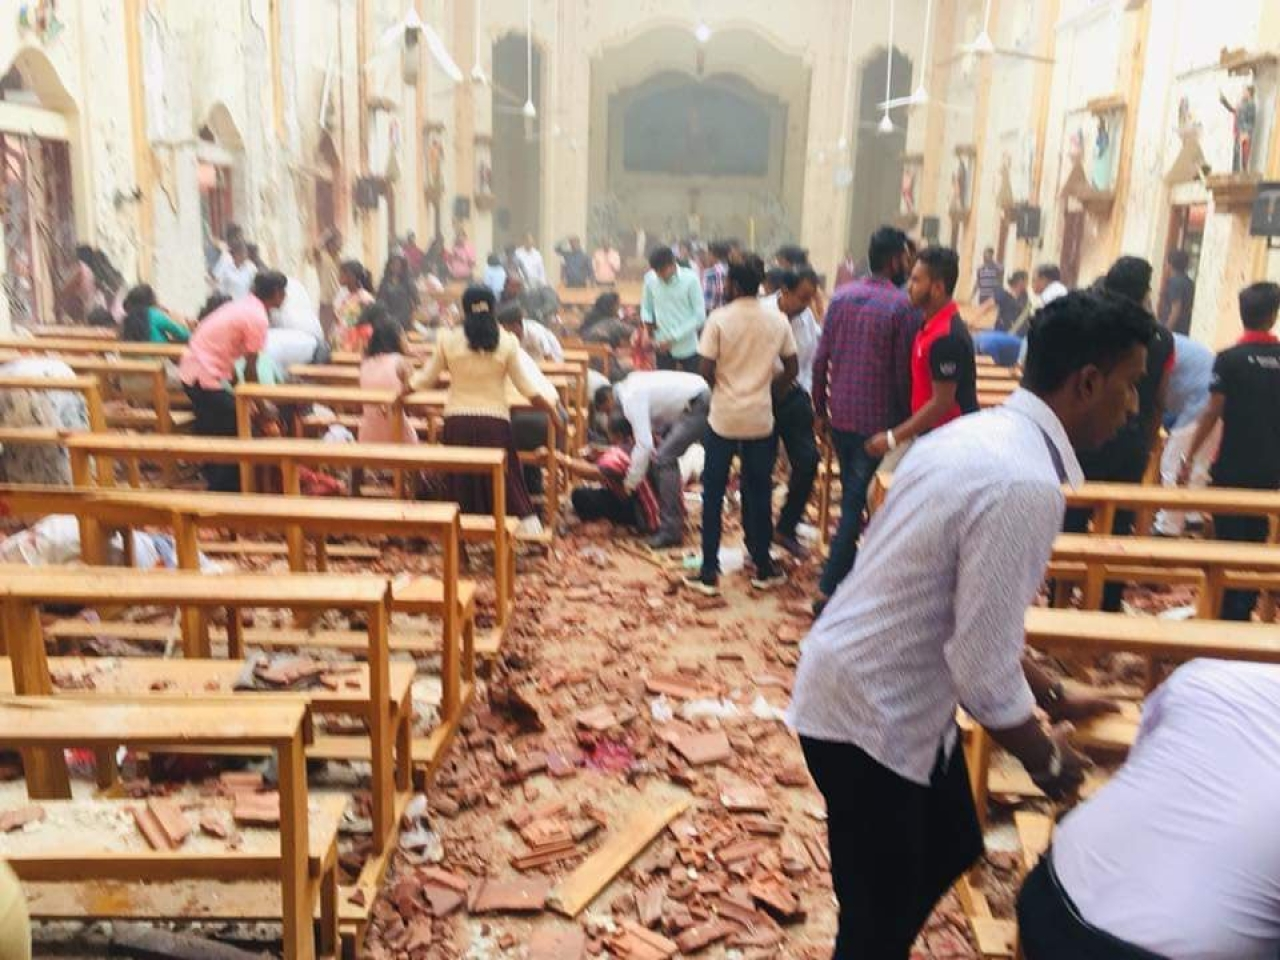 Sri Lanka Bombing: Millionaire Spice Moghul Yusuf Ibrahim In Custody After His Two Sons Are Identified As Suicide Bombers